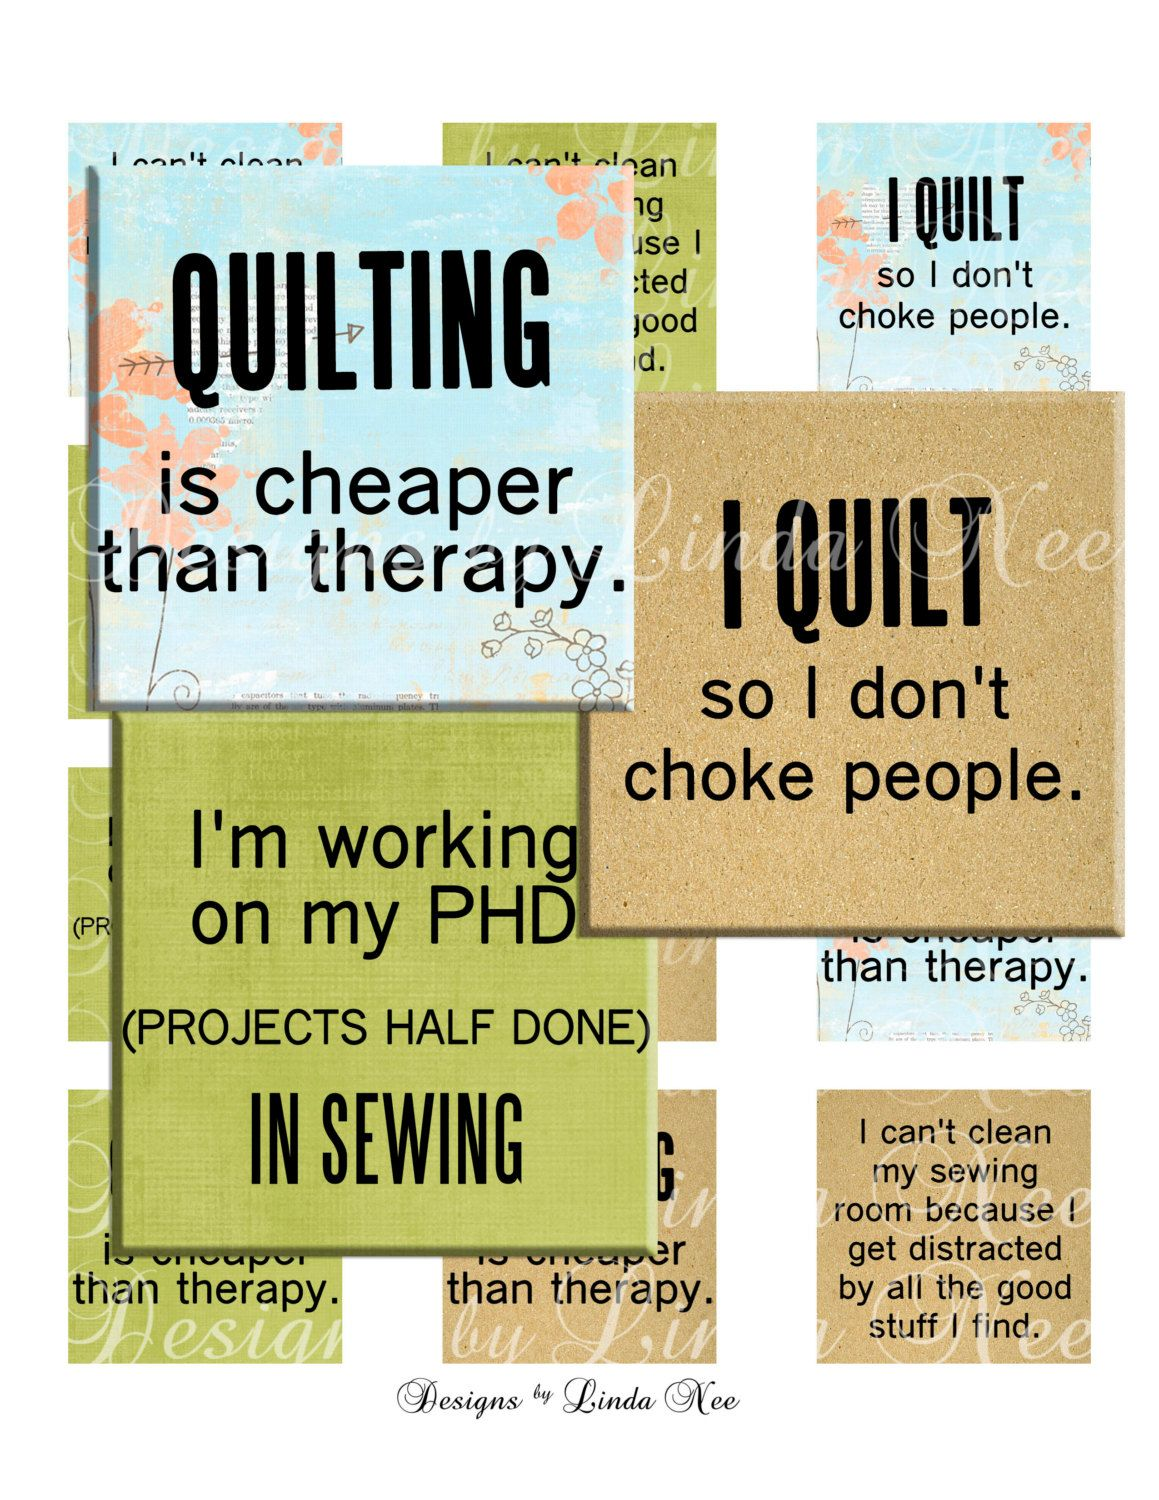 New Quilting And Fabric Quotes 2 1 X 1 Inch By Designsbylindanee